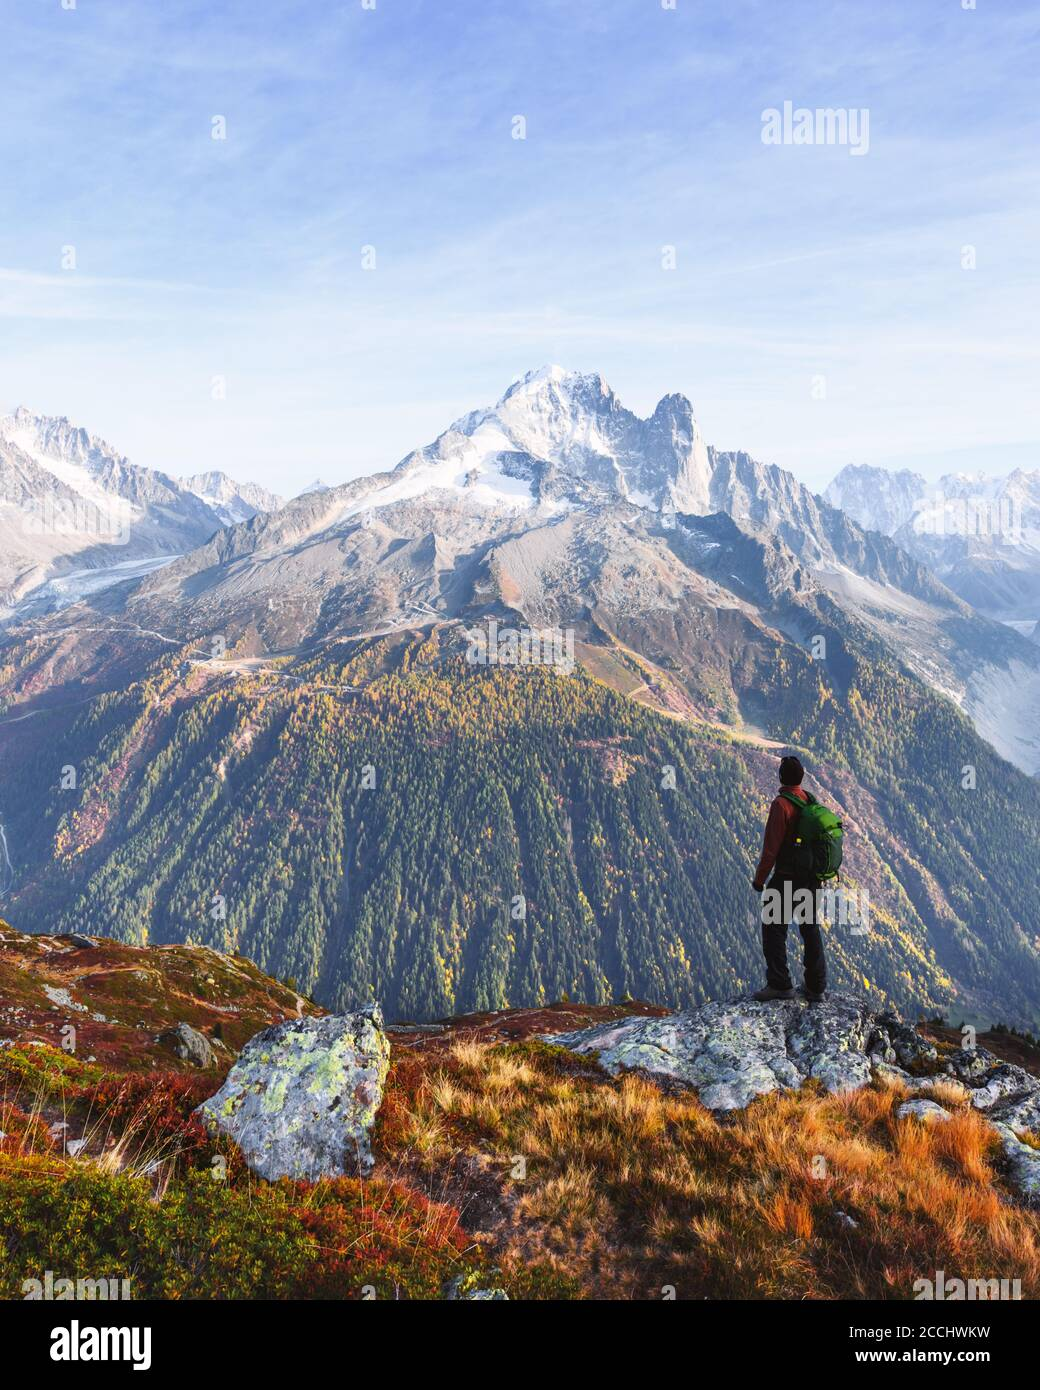 Amazing view on Monte Bianco mountains range with tourist on a foreground. Chamonix, France Alps. Landscape photography Stock Photo